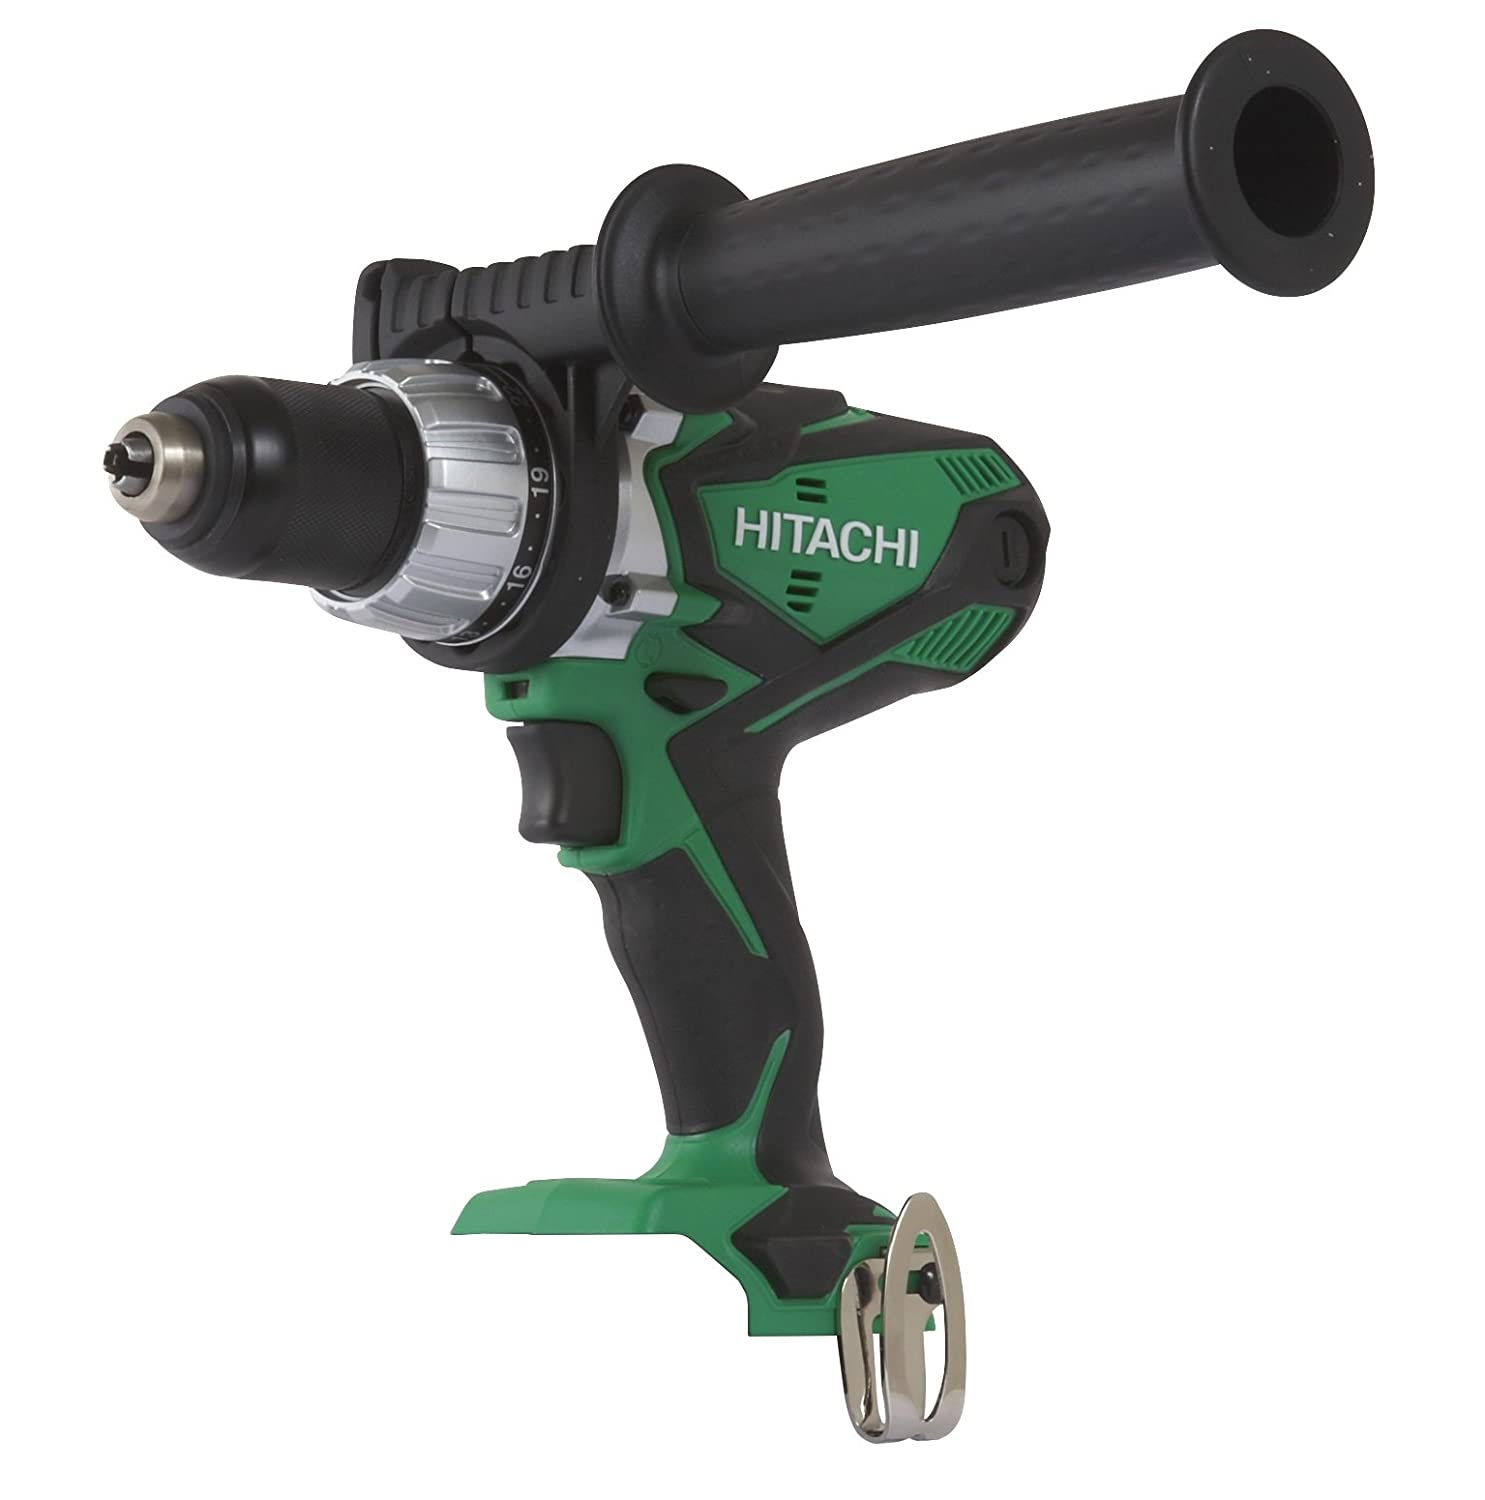 Hitachi DV18DSDLP4 18-Volt Cordless Lithium-Ion Hammer Drill Tool Only, No Battery